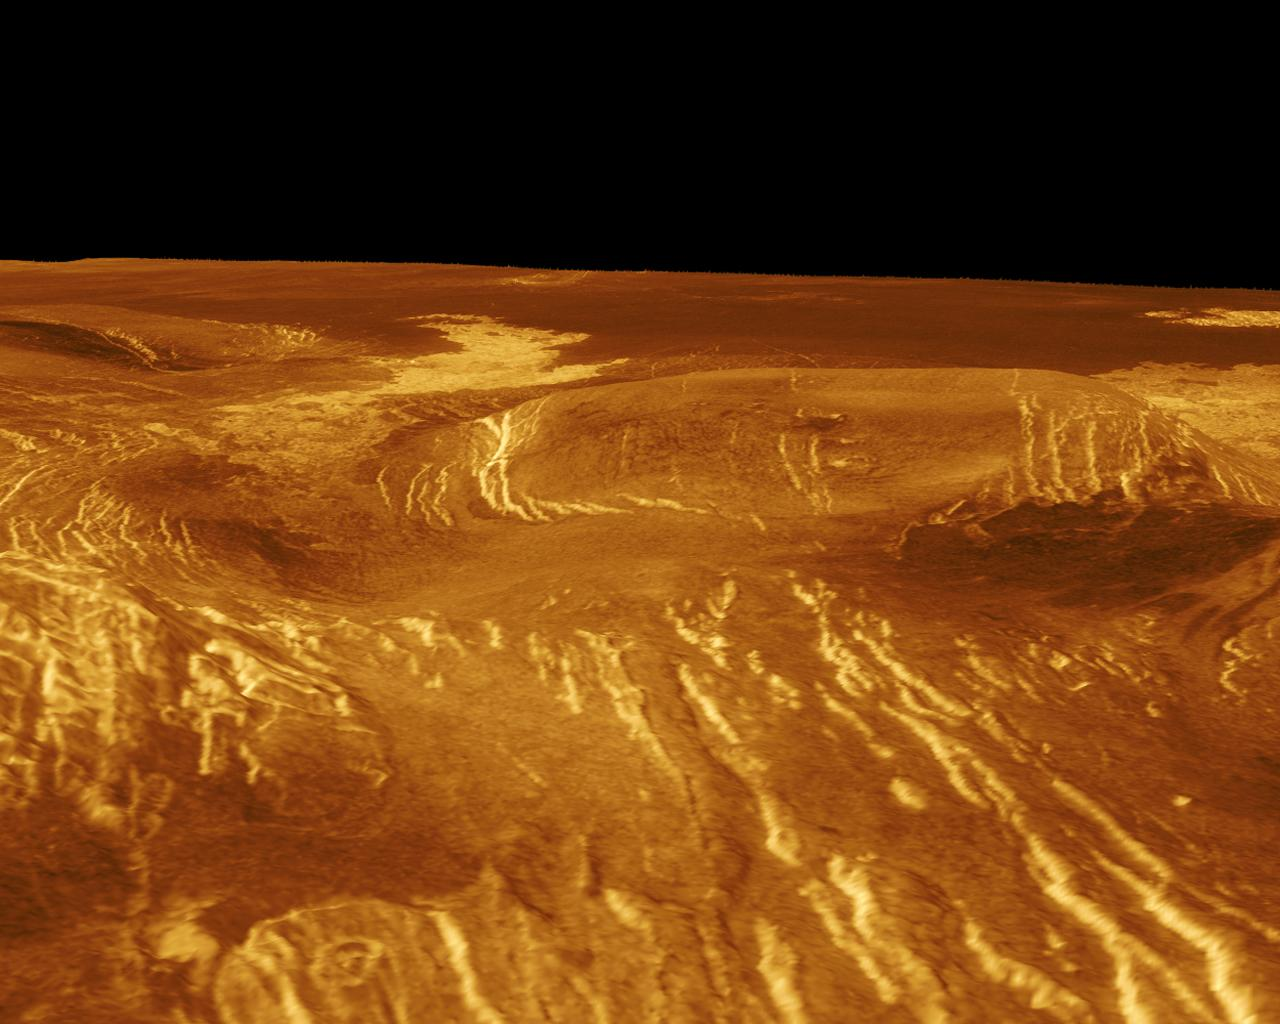 A corona is displayed in this computer-simulated view from NASA's Magellan spacecraft of the surface of Venus.